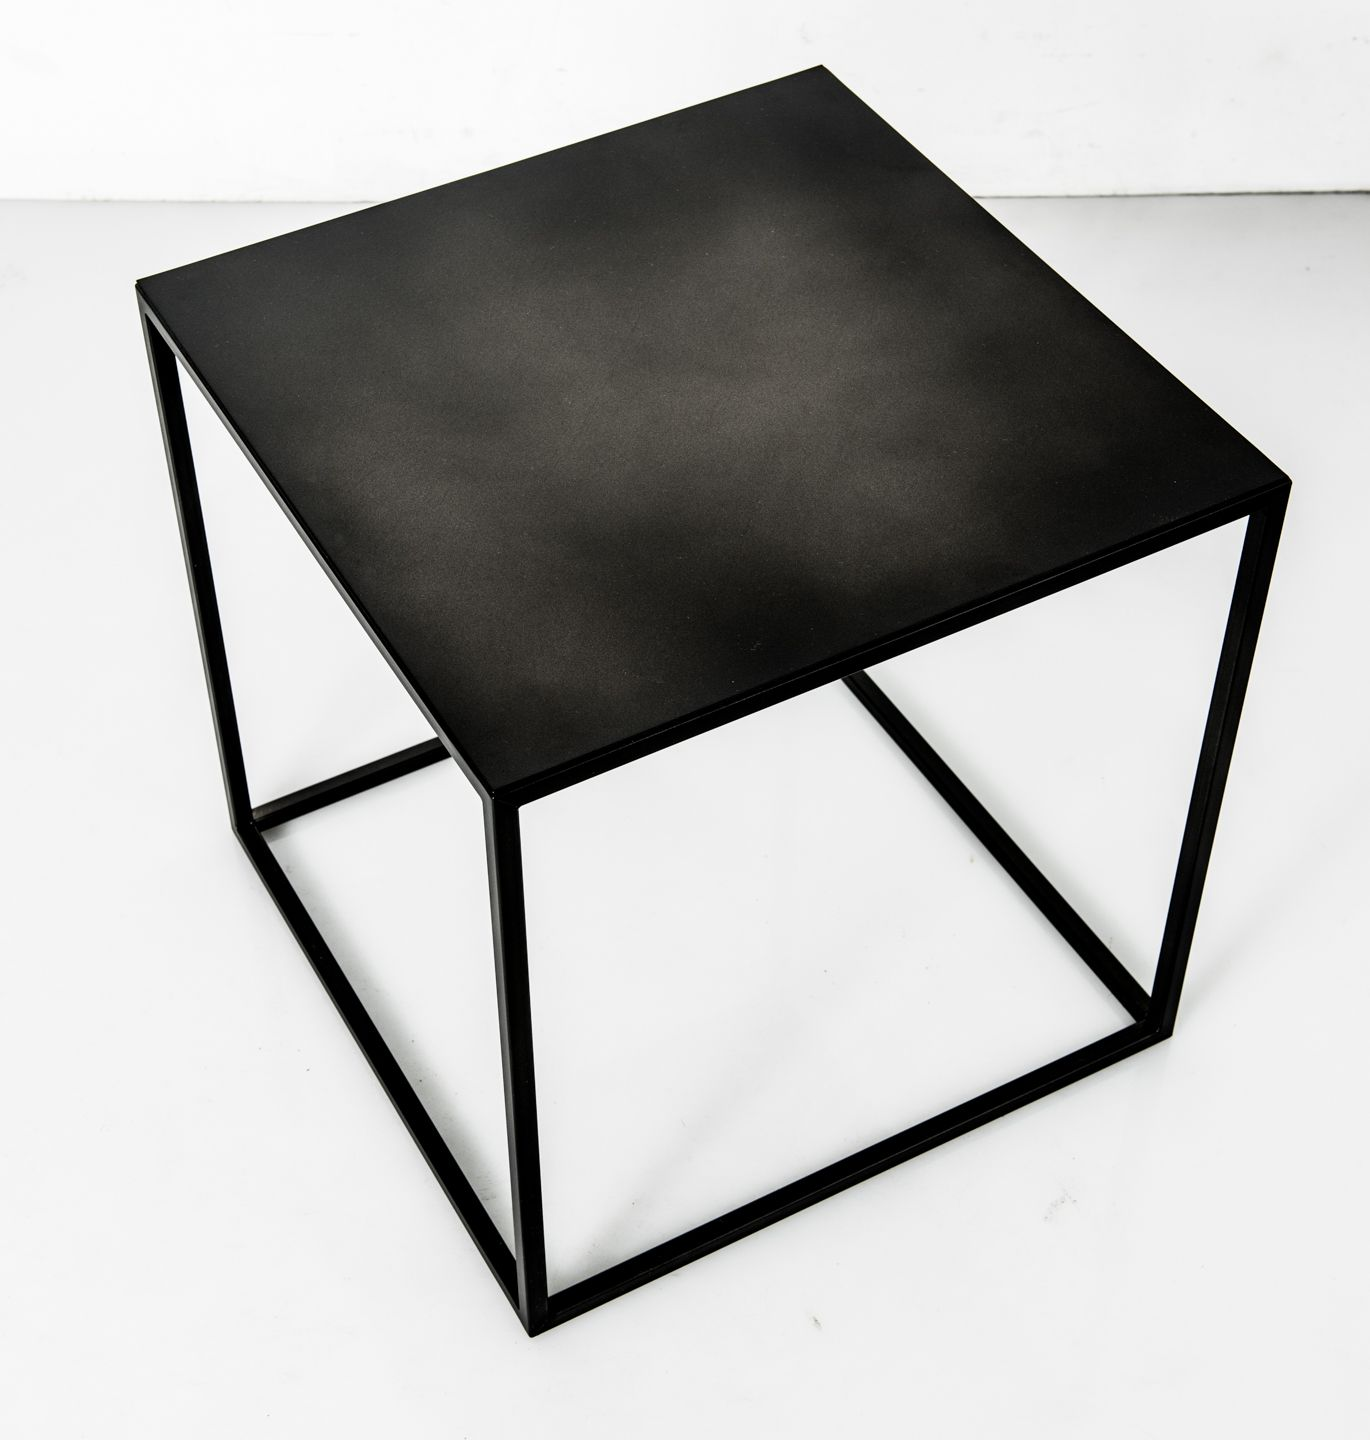 frisco patrick cain designs contemporary side tables black cube end table the powder coated steel available patrickcaindesigns blackfrisco free standing bathroom units broyhill